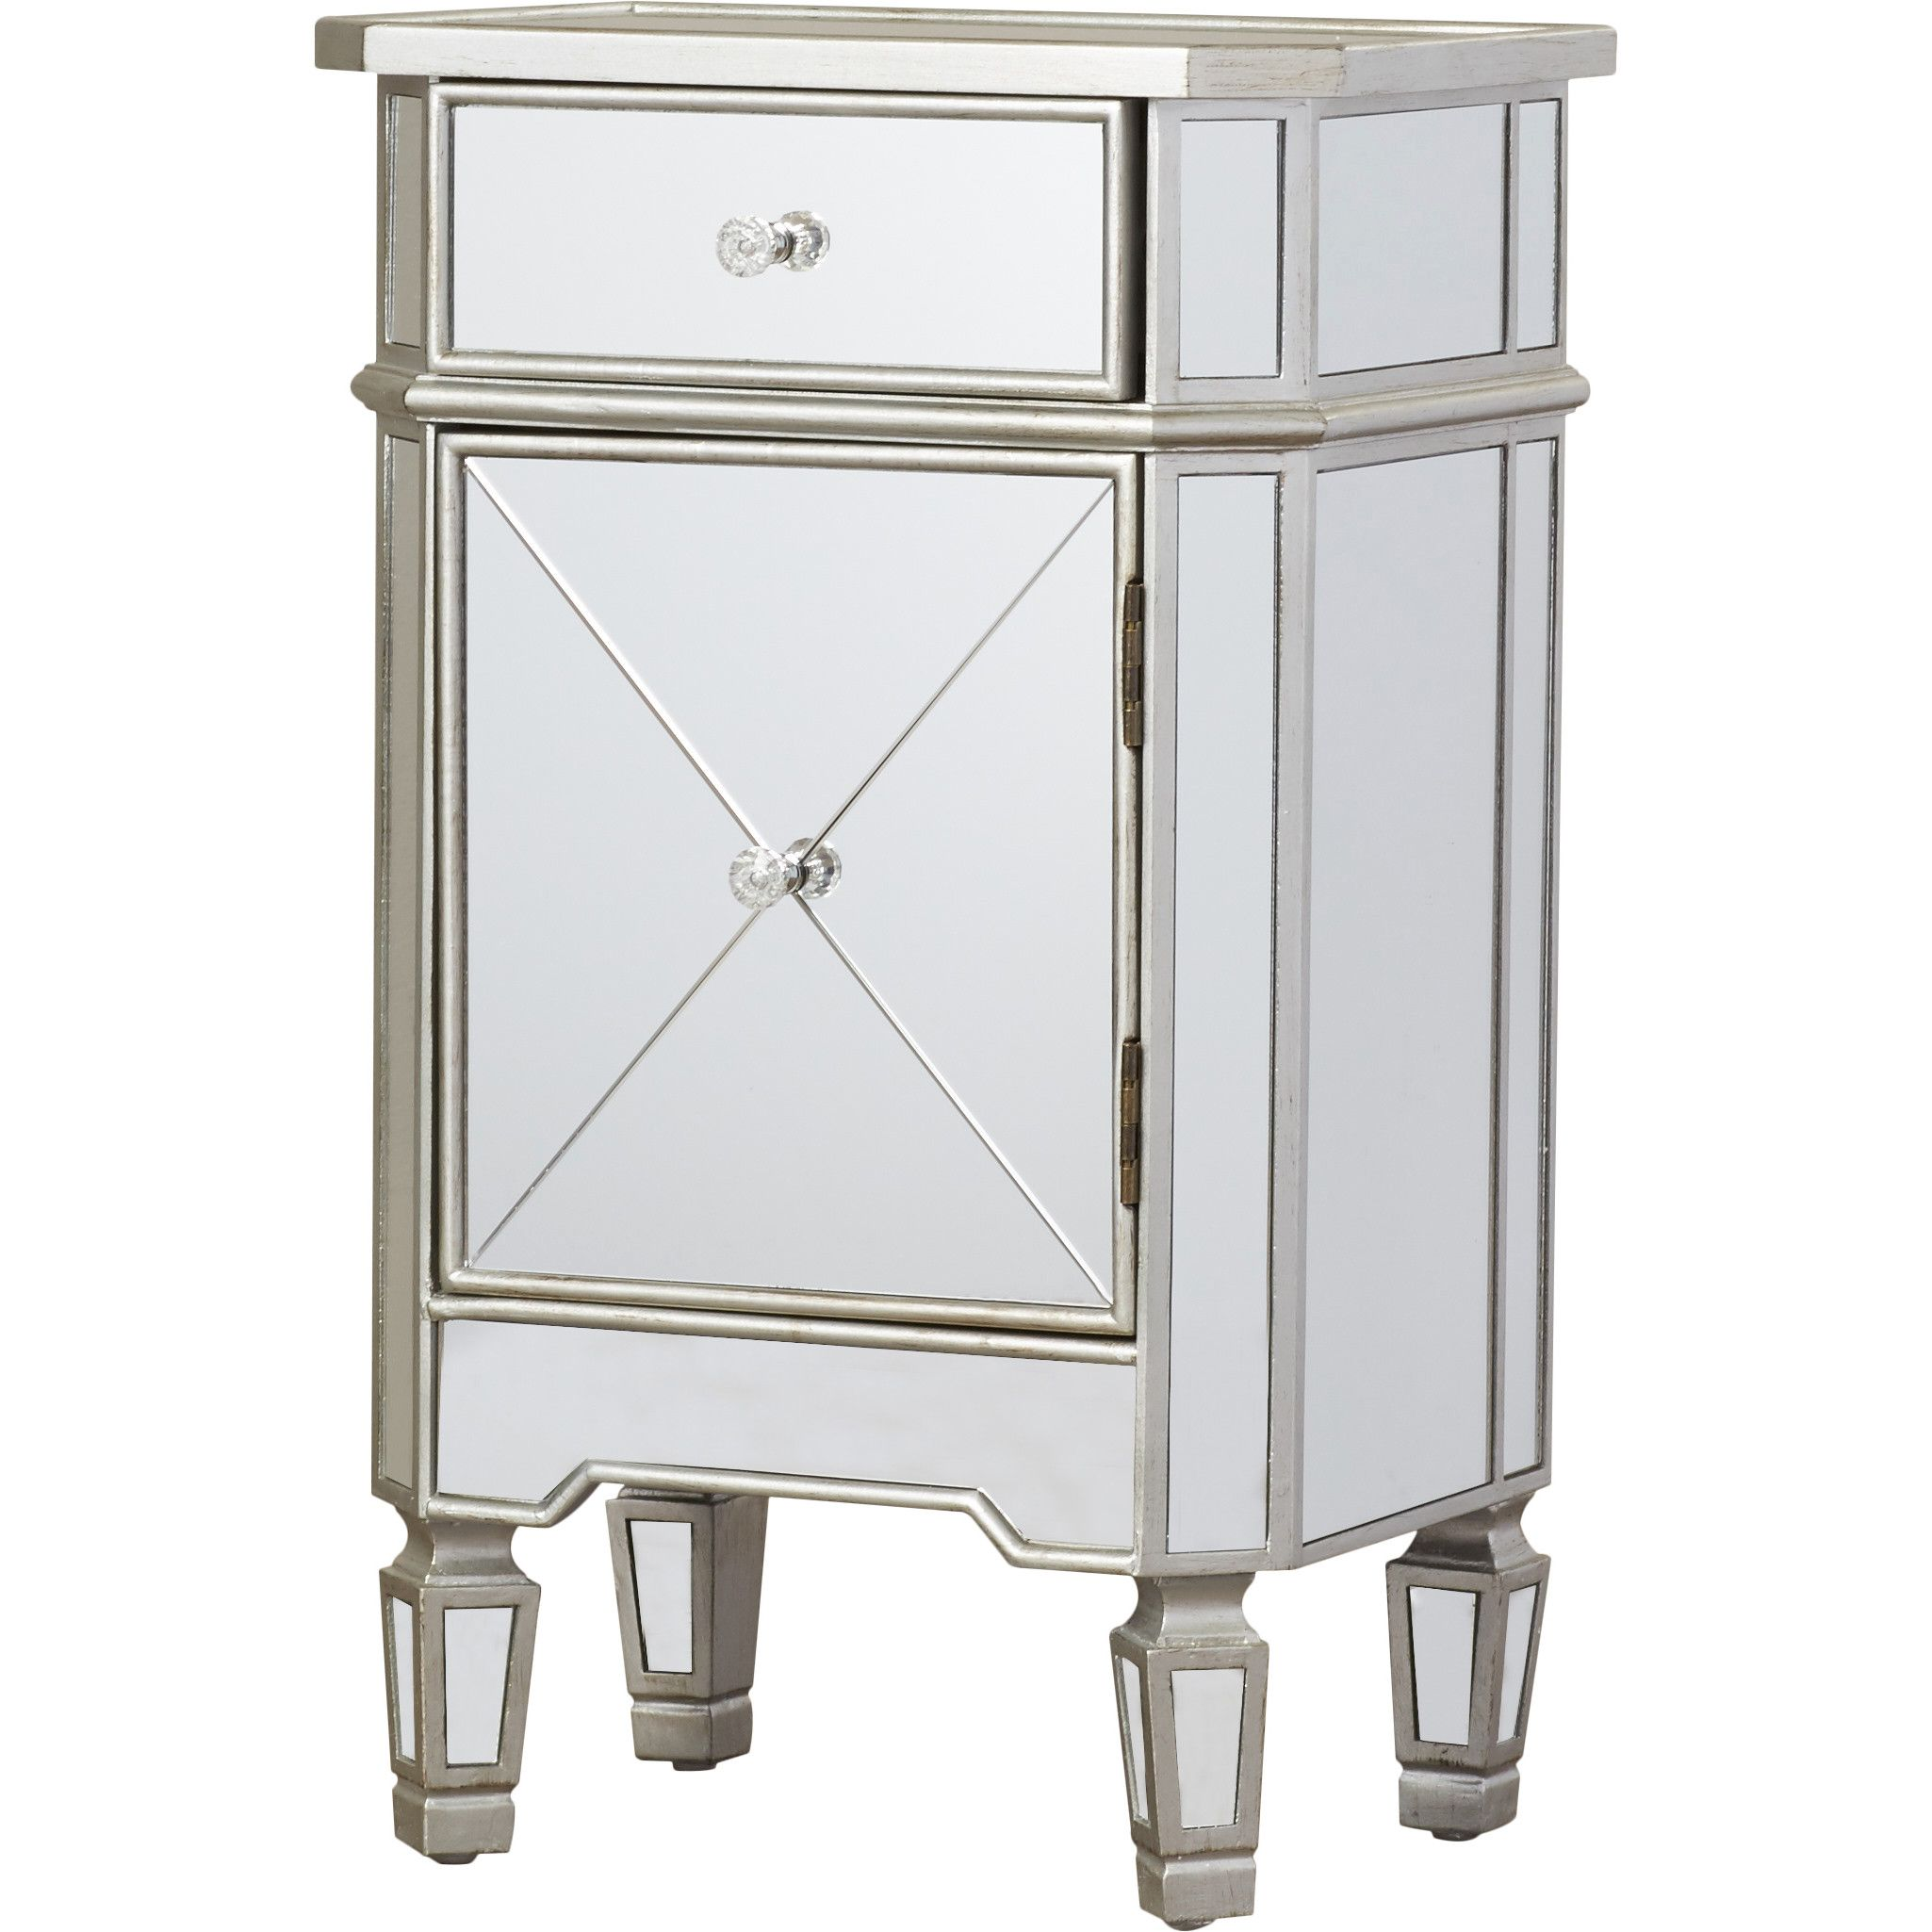 House Of Hampton Rhiannon 1 Drawer Mirrored Cabinet Accent Cabinet Mirrored Side Tables Accent Doors